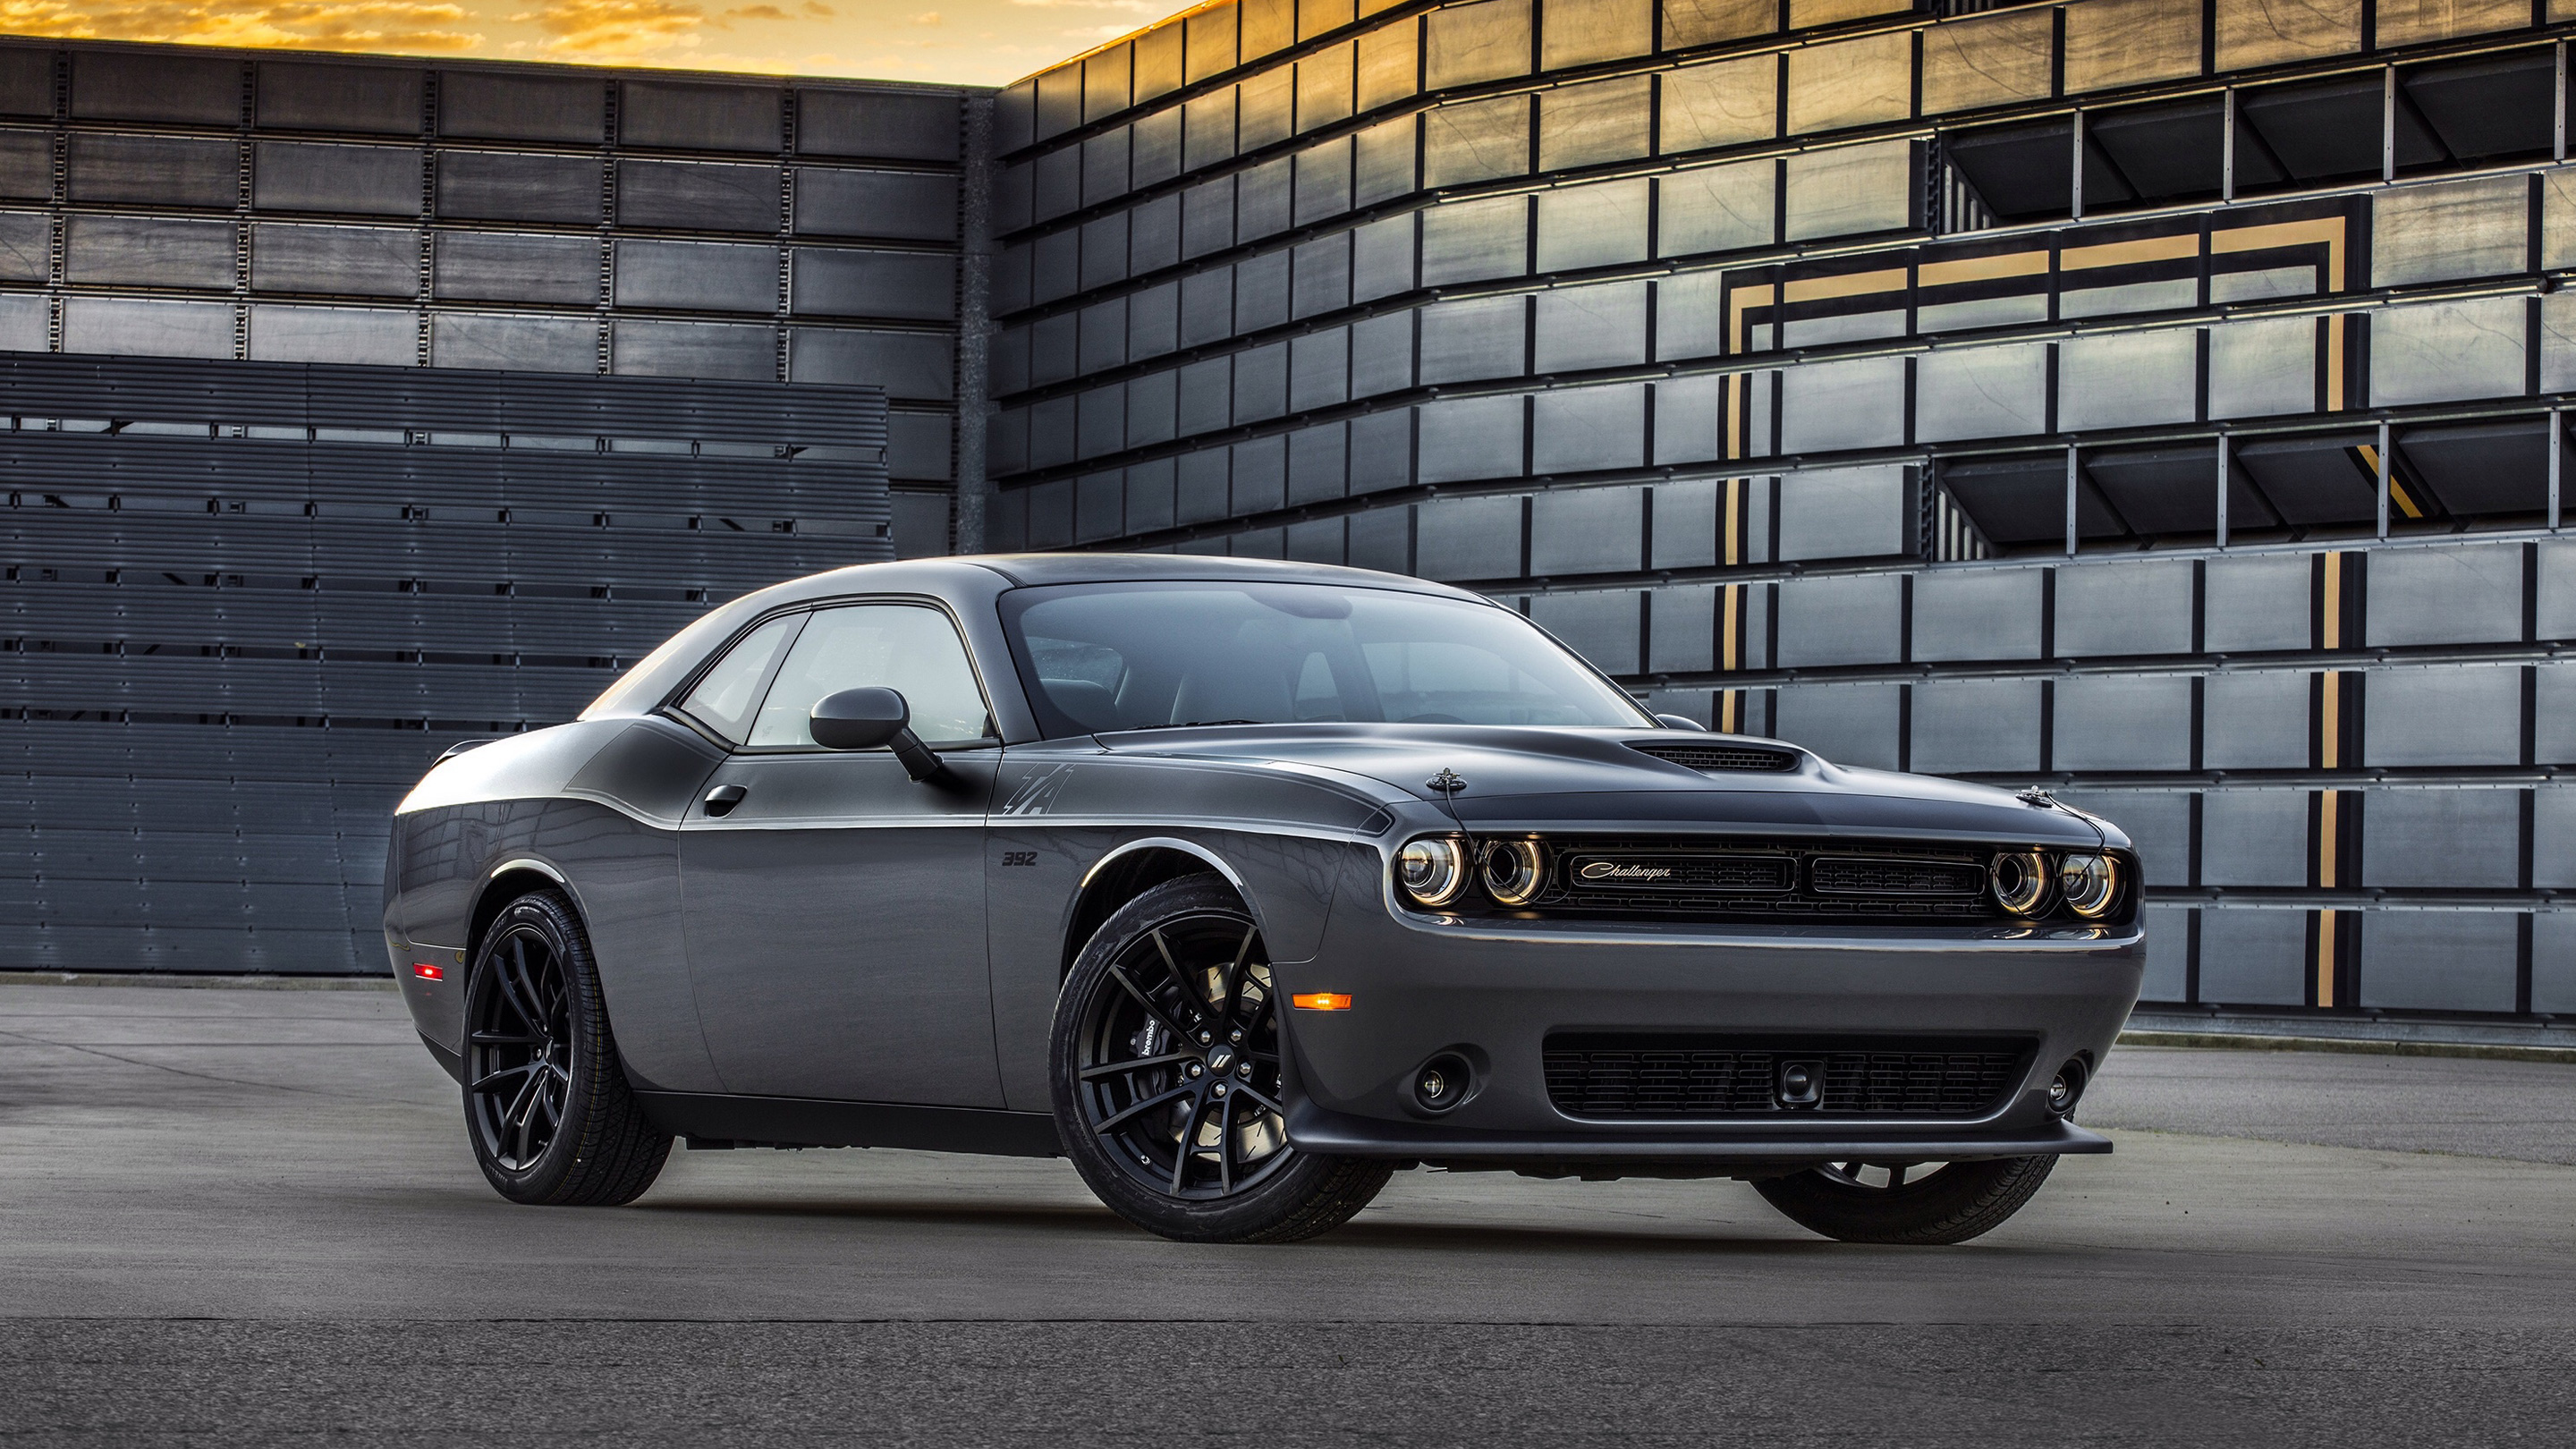 2017 dodge challenger ta wallpaper | hd car wallpapers | id #7059